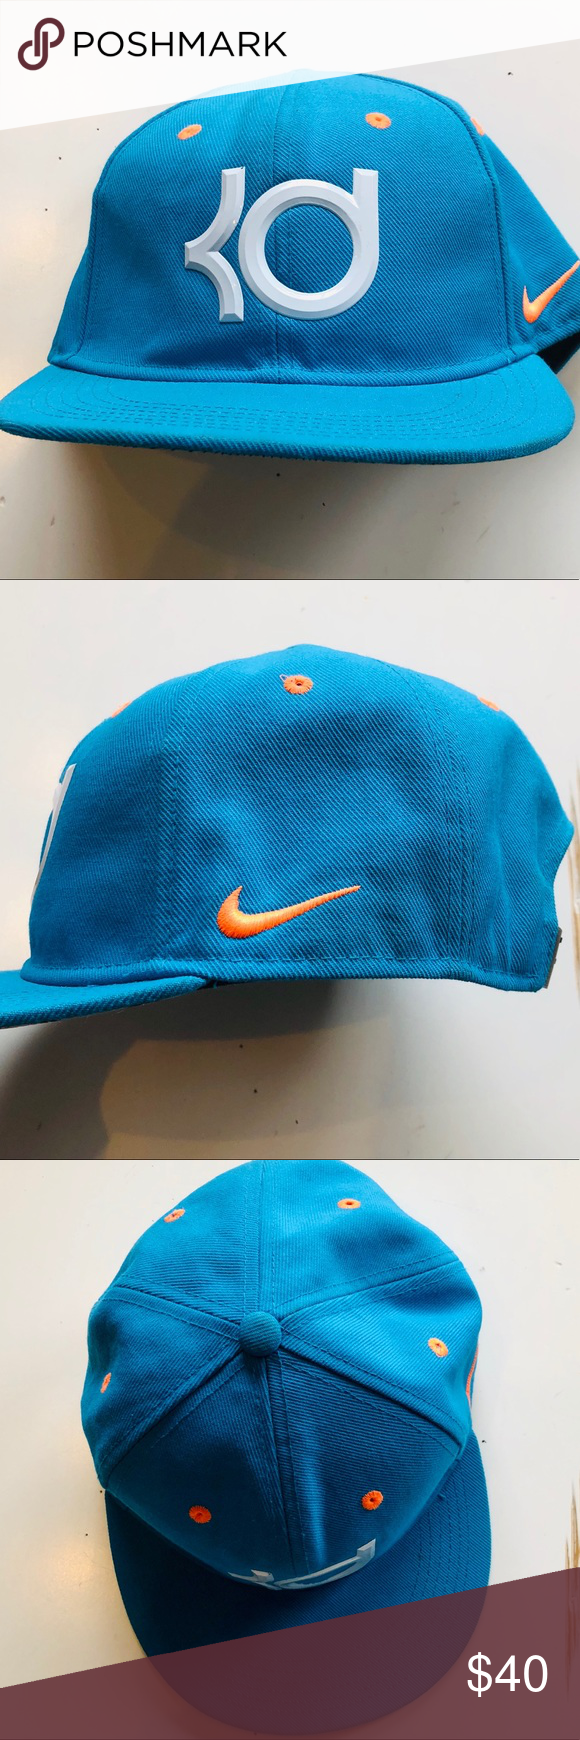 1c0ba3e420c61 Nike KD Kevin Durant 6 ELITE SERIES TRUE SNAPBACK Excellent condition with  no flaws tears stains or fading! Like New! Authentic Nike KD Kevin Durant  Cap!